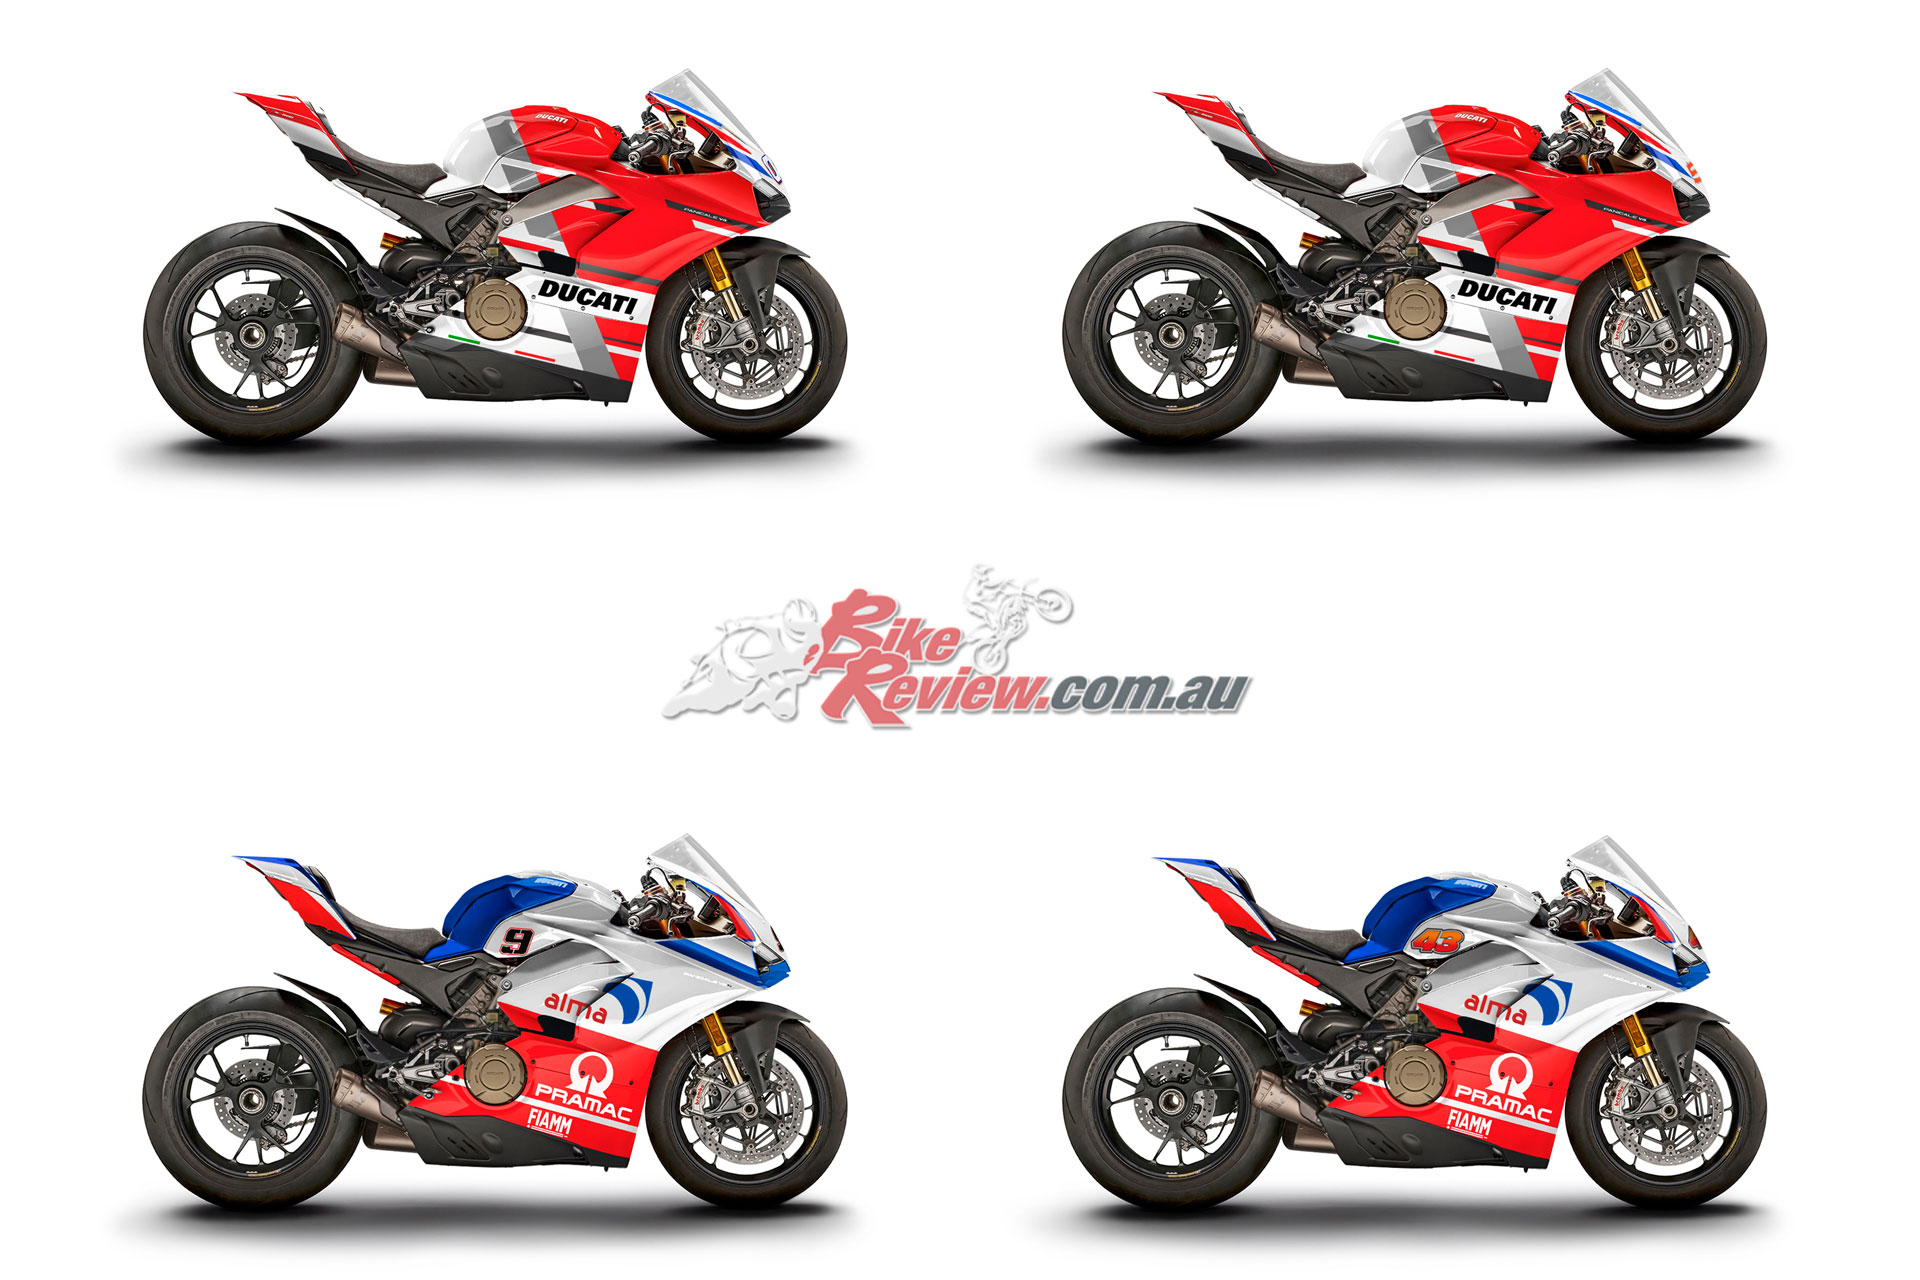 13 wdw race of champions panigale v4s to be auctioned bike review. Black Bedroom Furniture Sets. Home Design Ideas